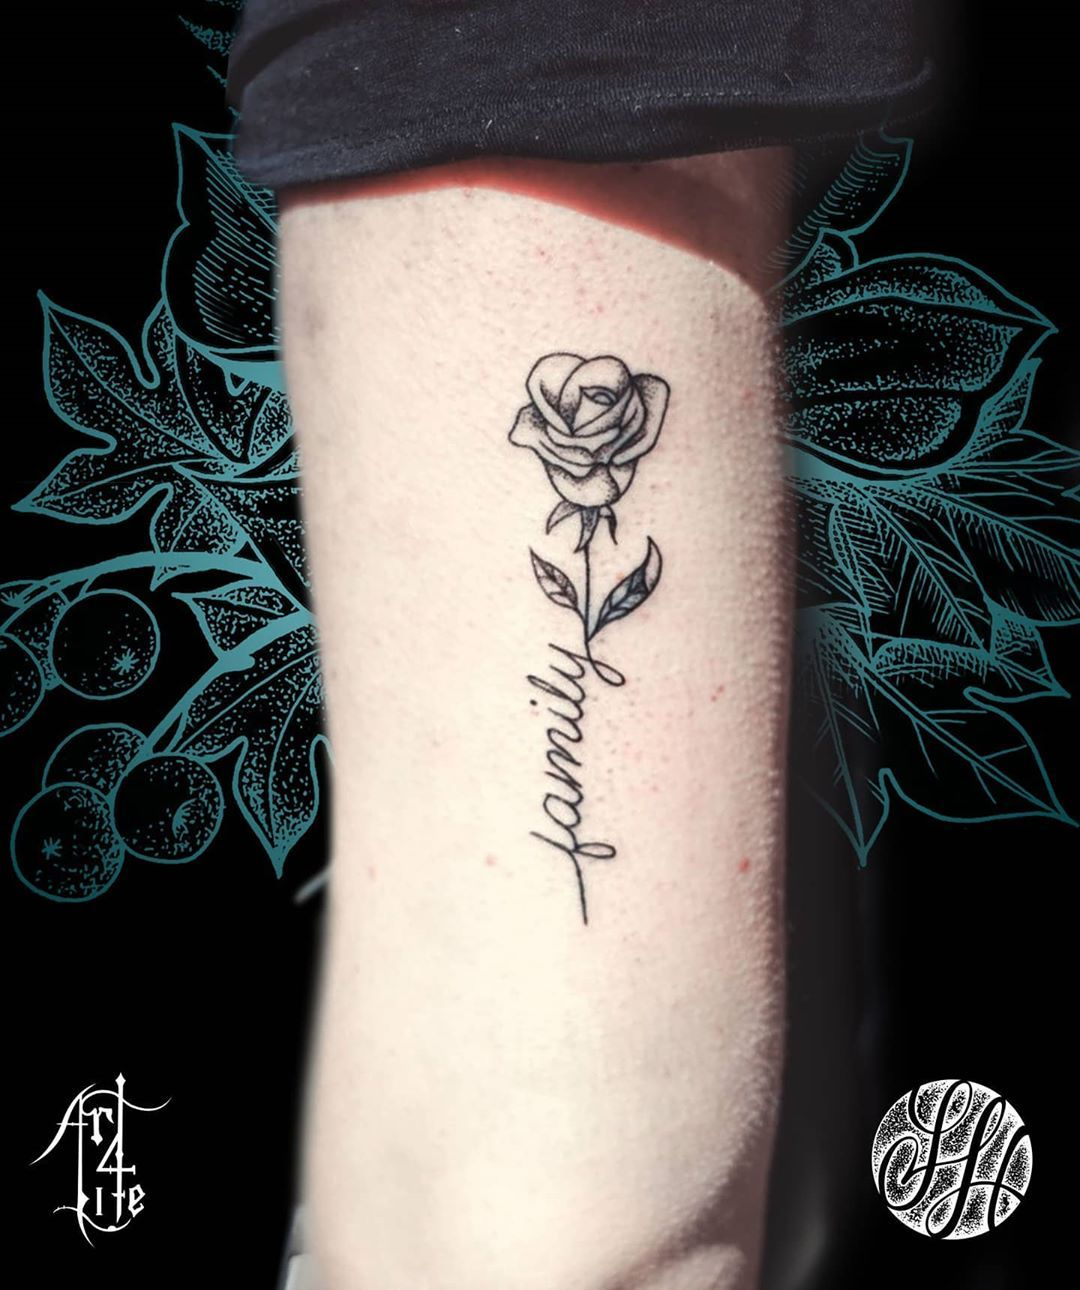 Fineline rose & lettering done by me a few weeks ago at Art4life tattoo Studio @art4life_tattoos.  DM for enquiries. Check out the studio website at: www.art4lifetattoo.eu #spijkenisse #rotterdam #tattoo #ink #lineworktattoo #finelinetattoo #inked #newink #rotterdamtattoo  #scripttattoo #handlettering #letteringtattoo #dutchtattoo #familytattoo #rosetattoo #dotworktattoo